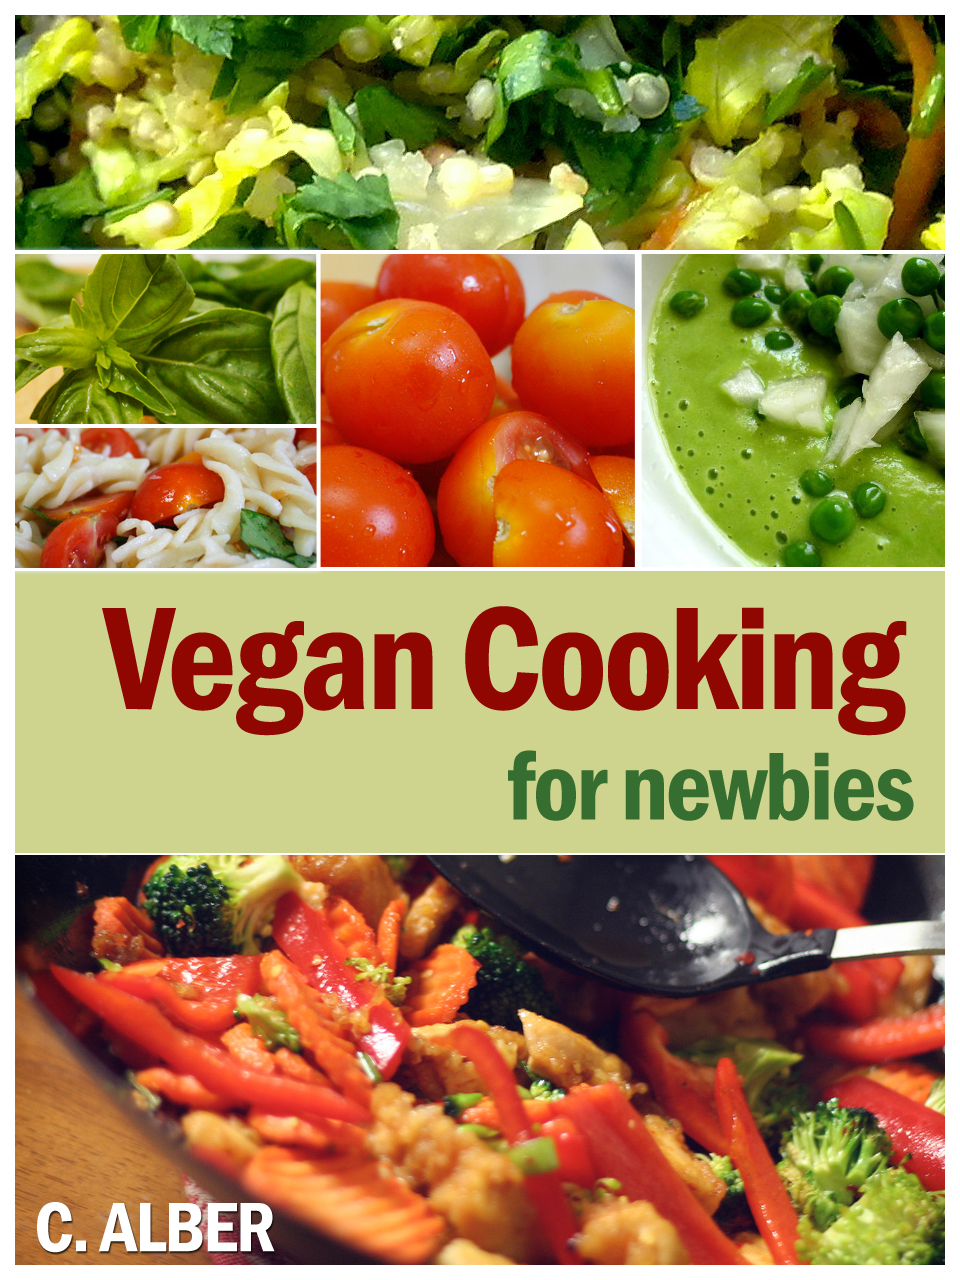 Vegan Cooking for Newbies By: C ALBER